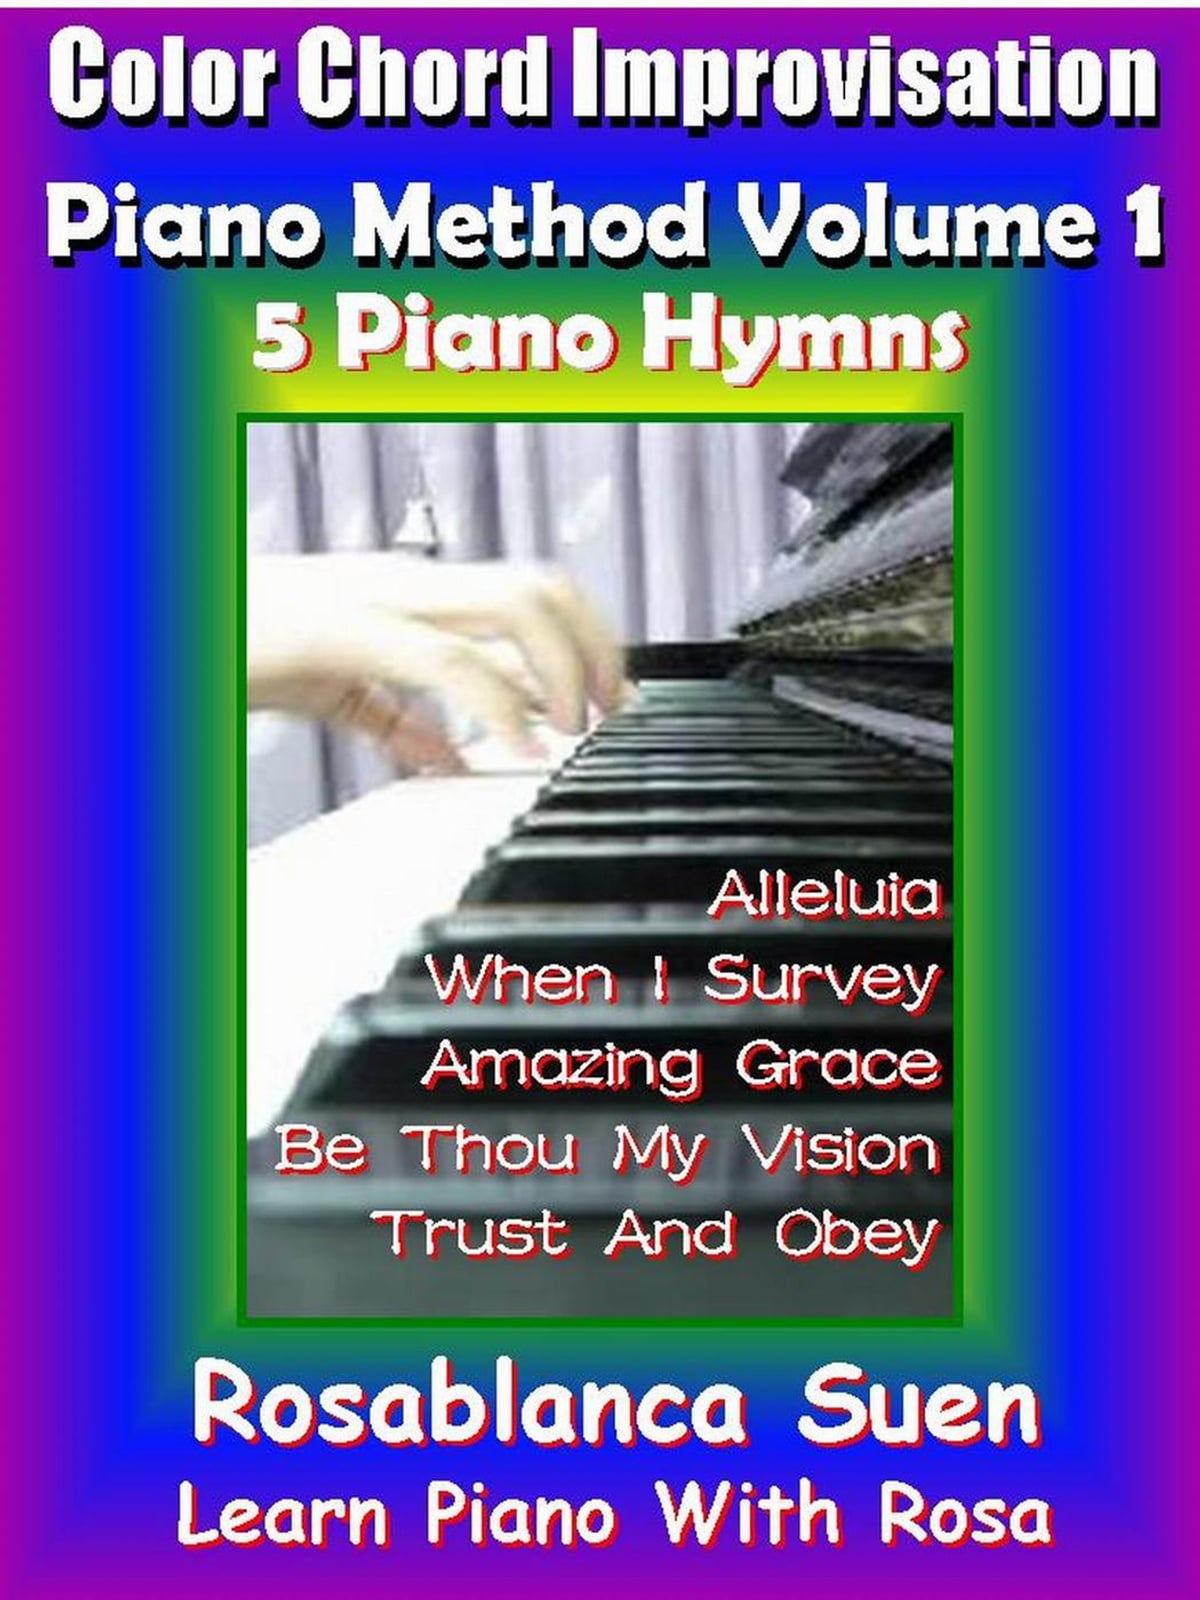 Piano Course Color Chord Improvisation Method Volume 1 Learn 5